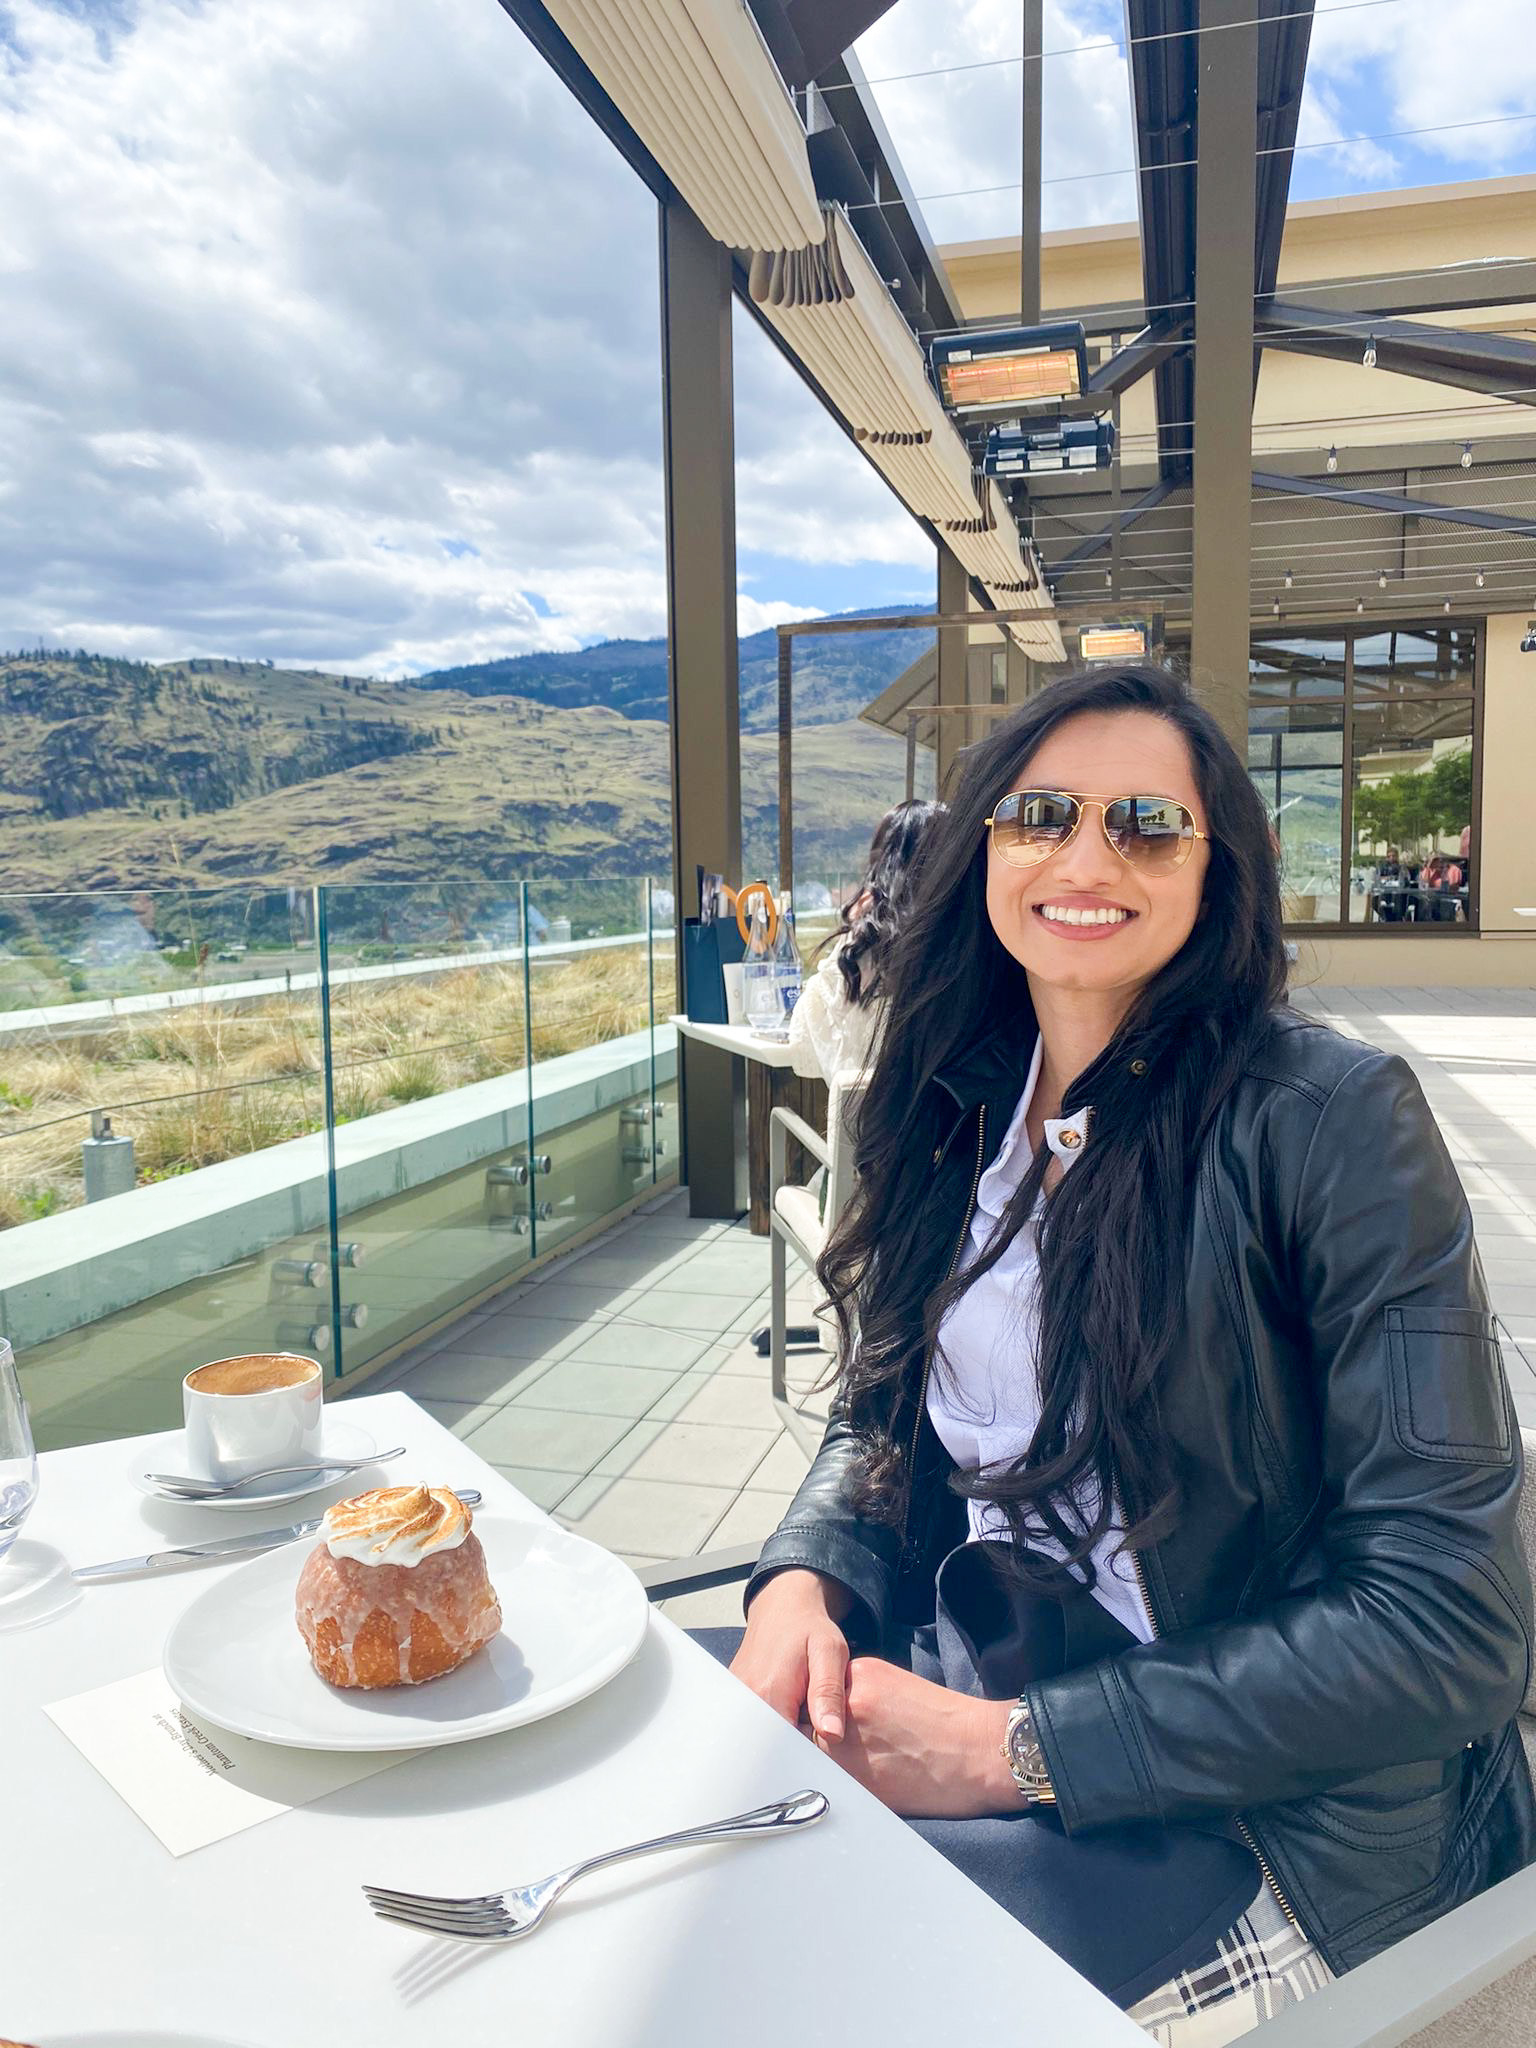 Mandeep sitting at an outdoor table at a restaurant next to a dessert on her table